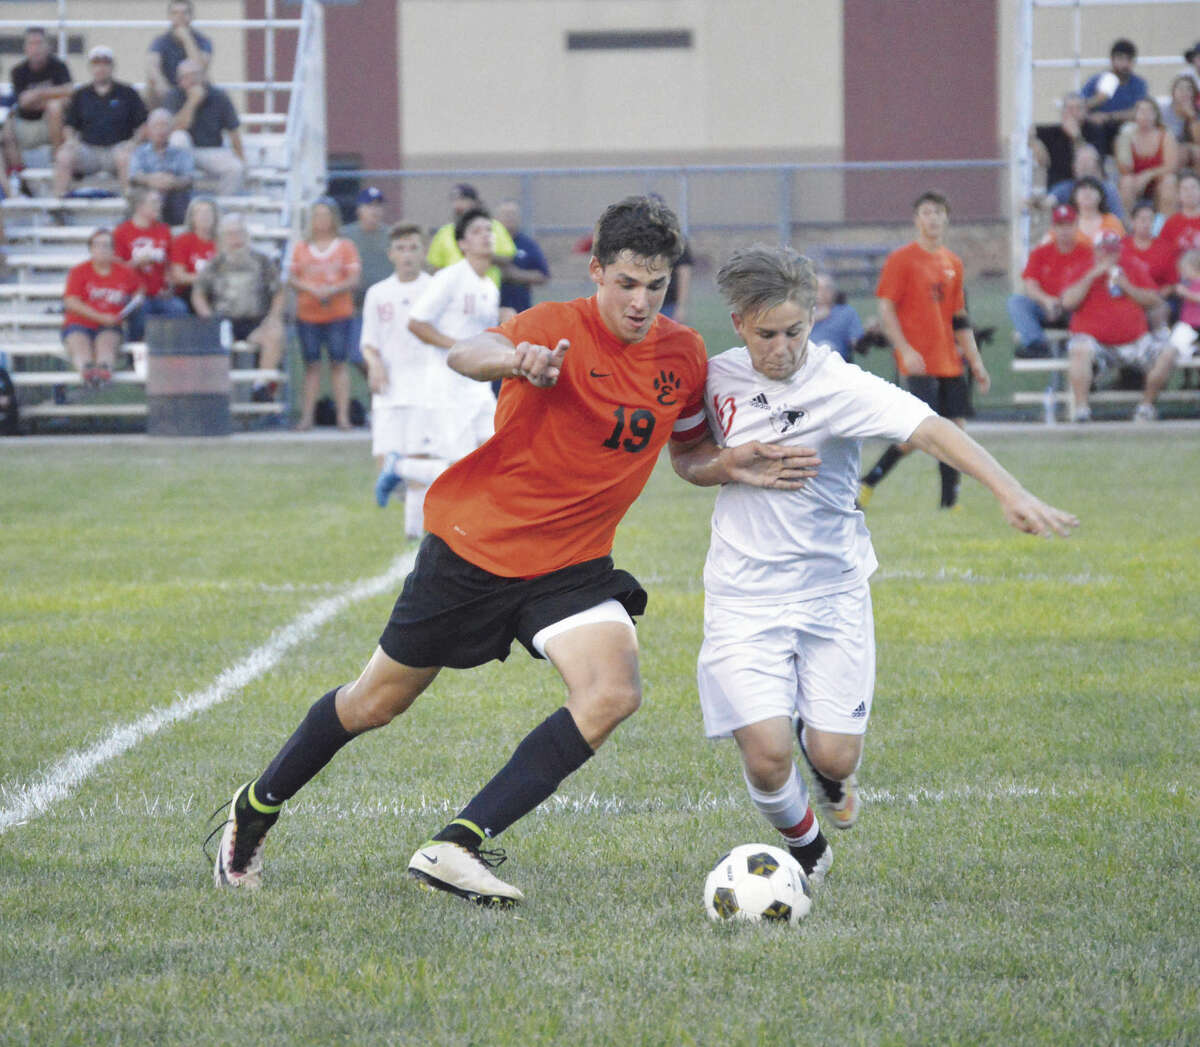 Edwardsville senior Michael Picchiotti tries to keep a Granite City defender away from the ball at midfield during the first half at Gene Baker Field.